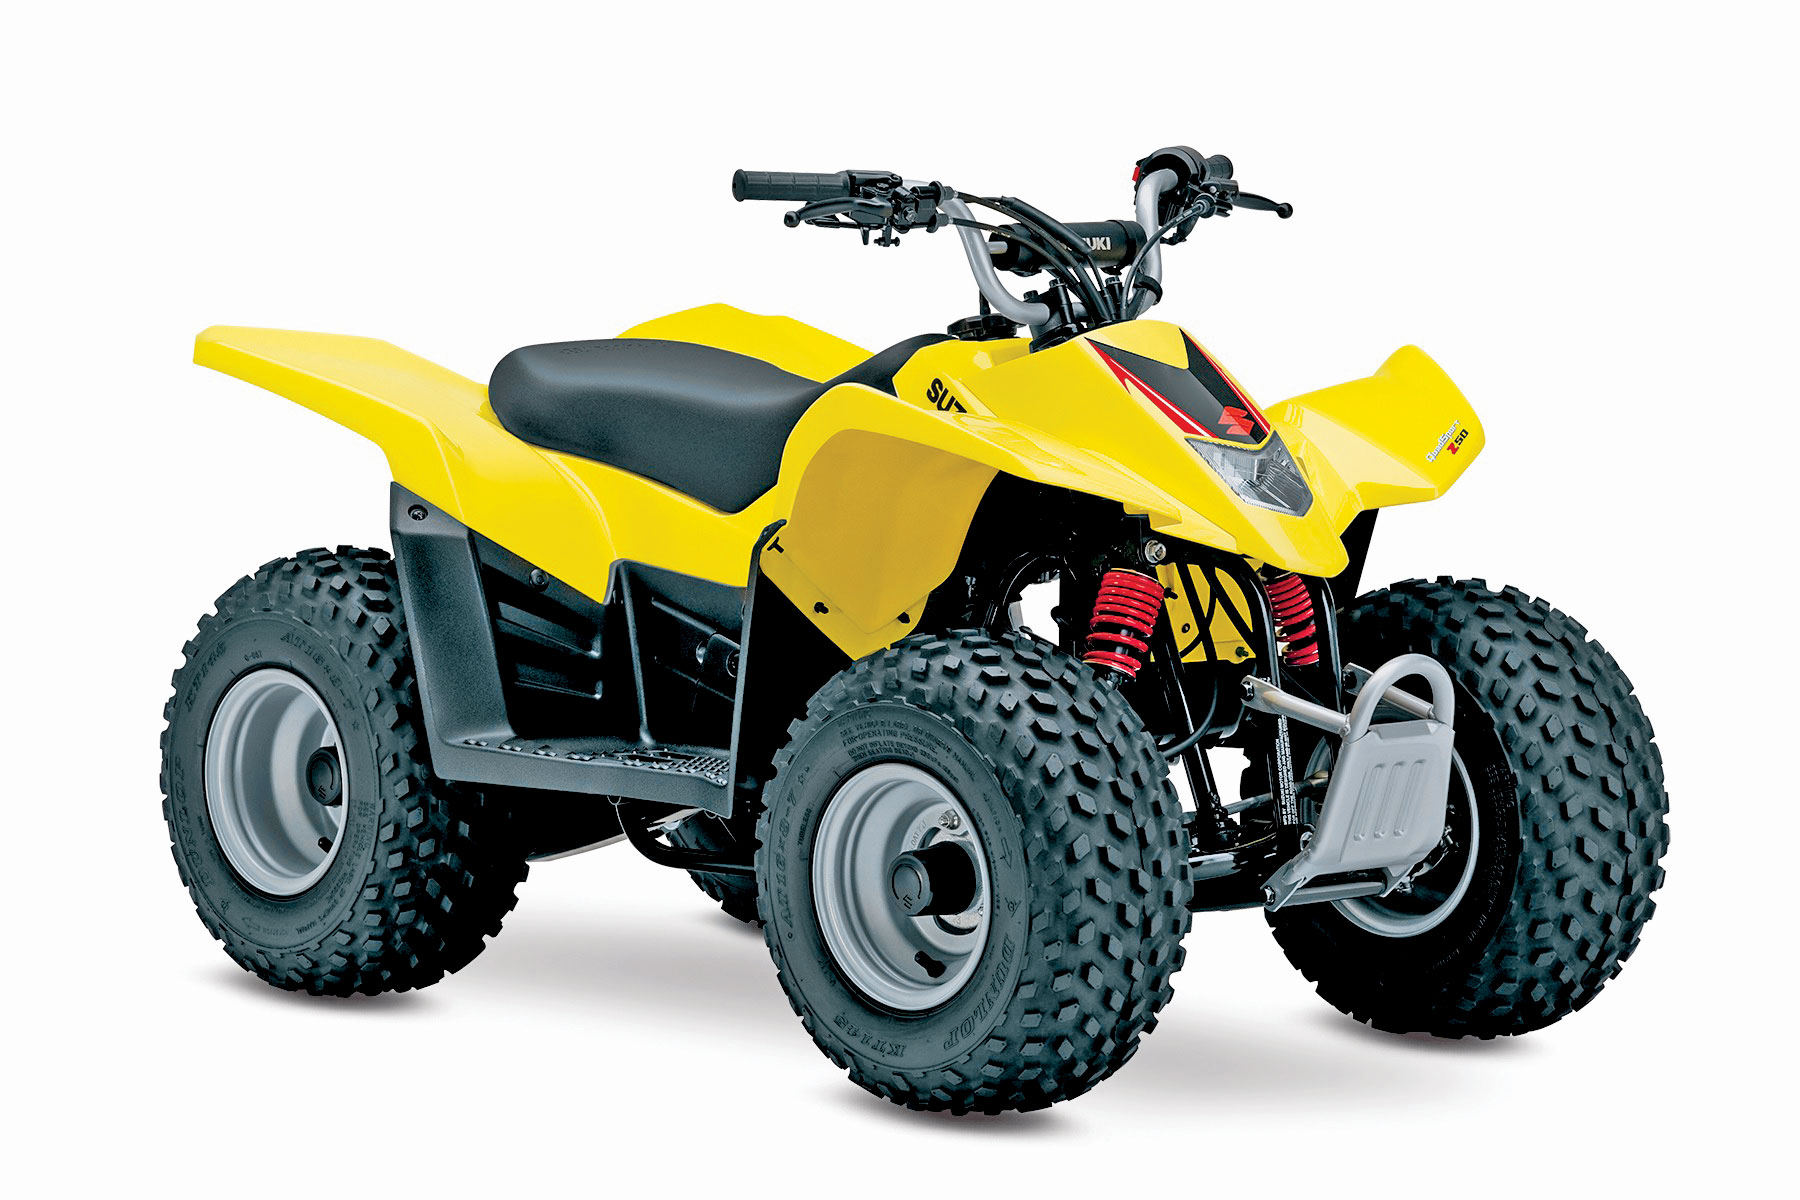 2017 Youth Atv Buyer S Guide Utv Action Magazine